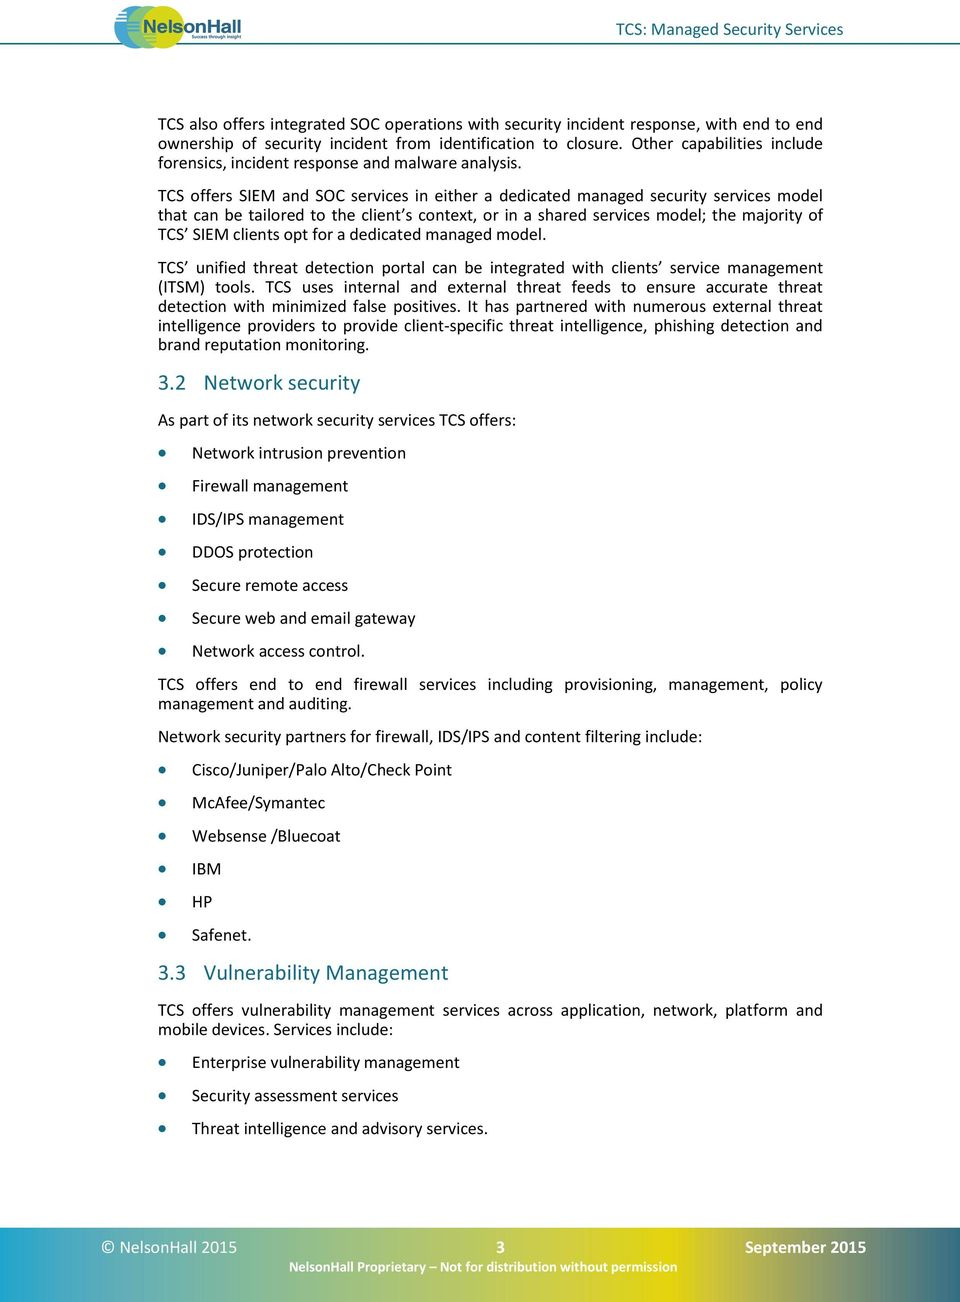 TCS Managed Security Services - PDF